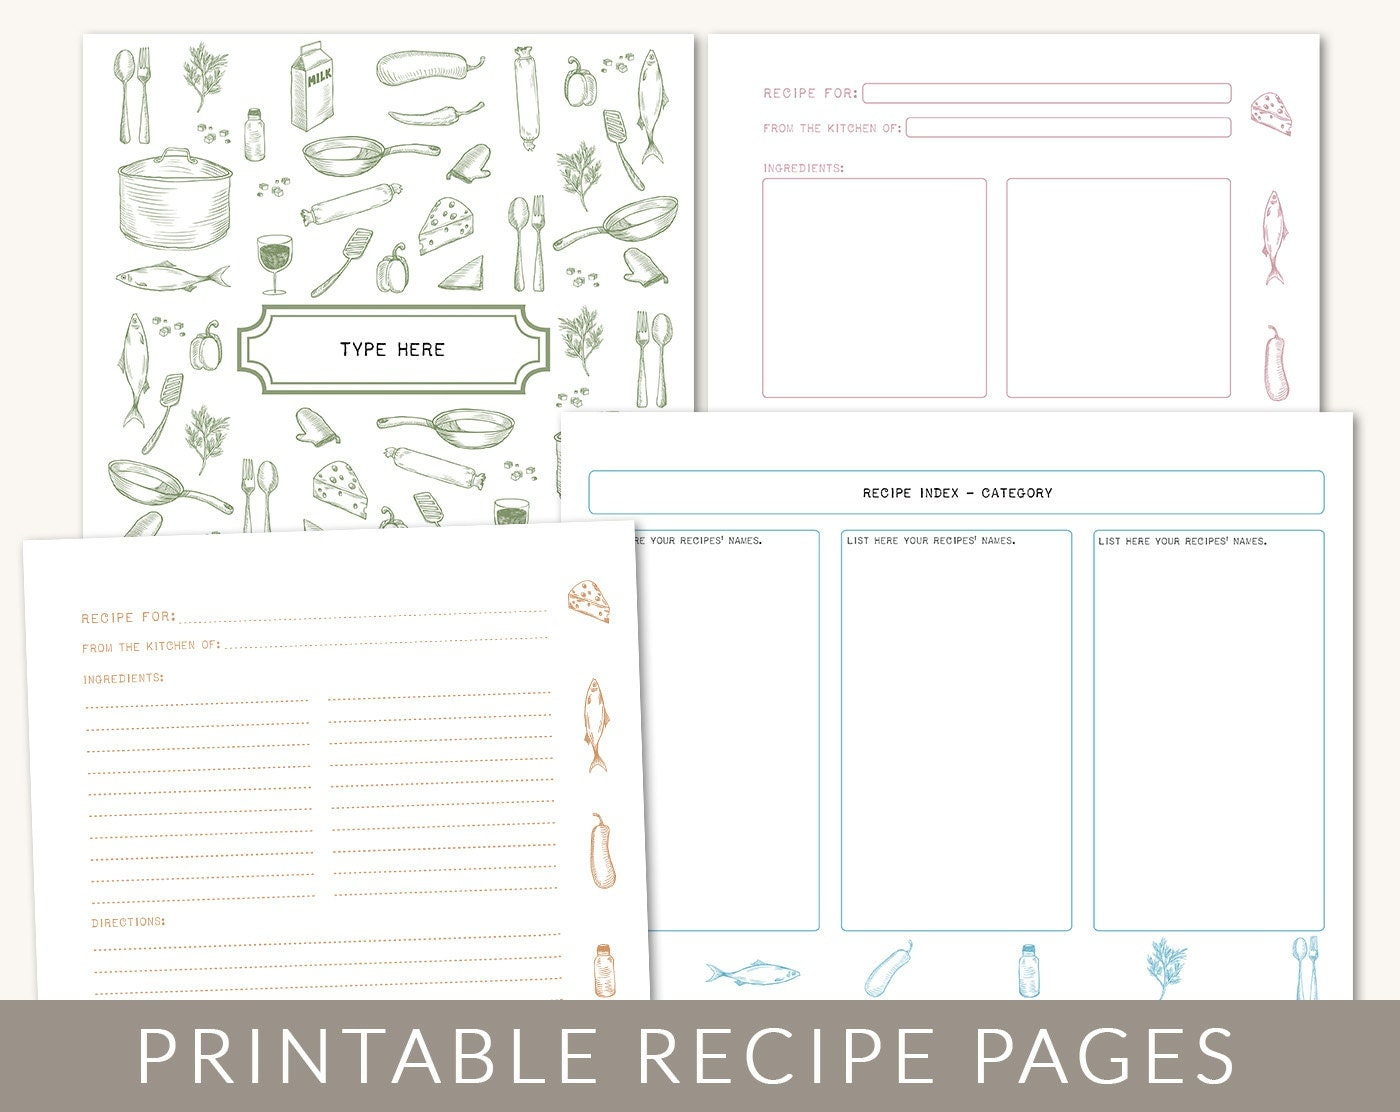 Diy custom recipe binder cookbook printable pages 40 for Free online cookbook template